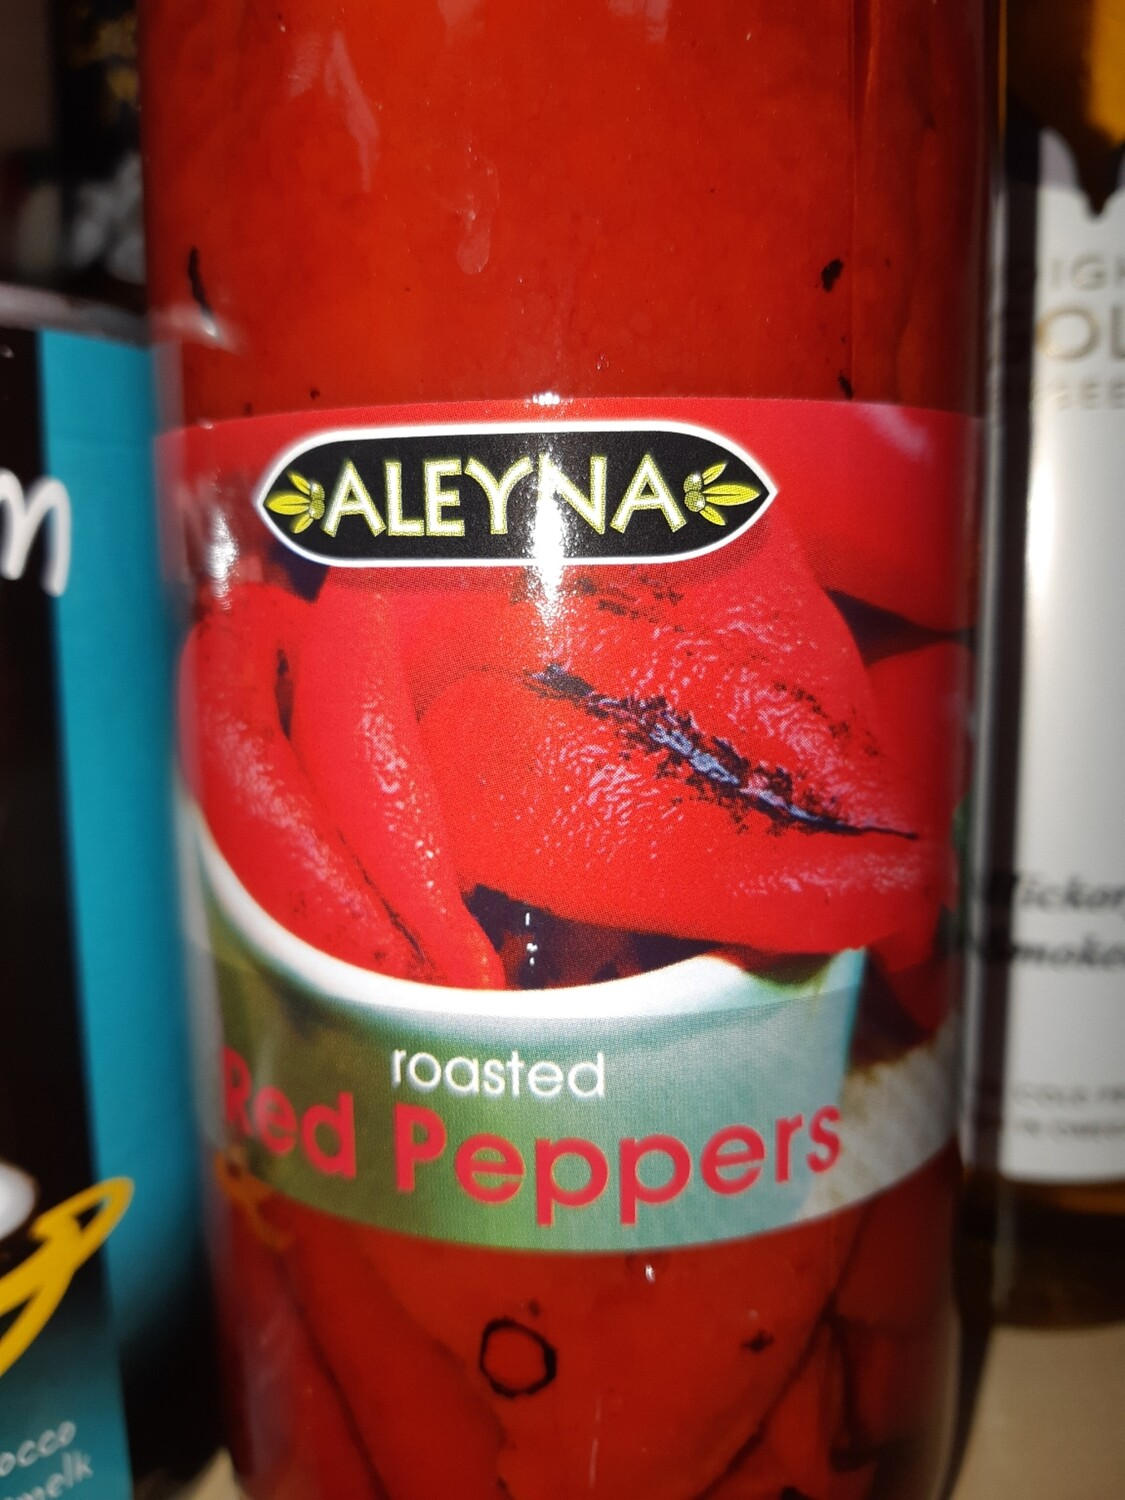 Z Roasted Red Peppers